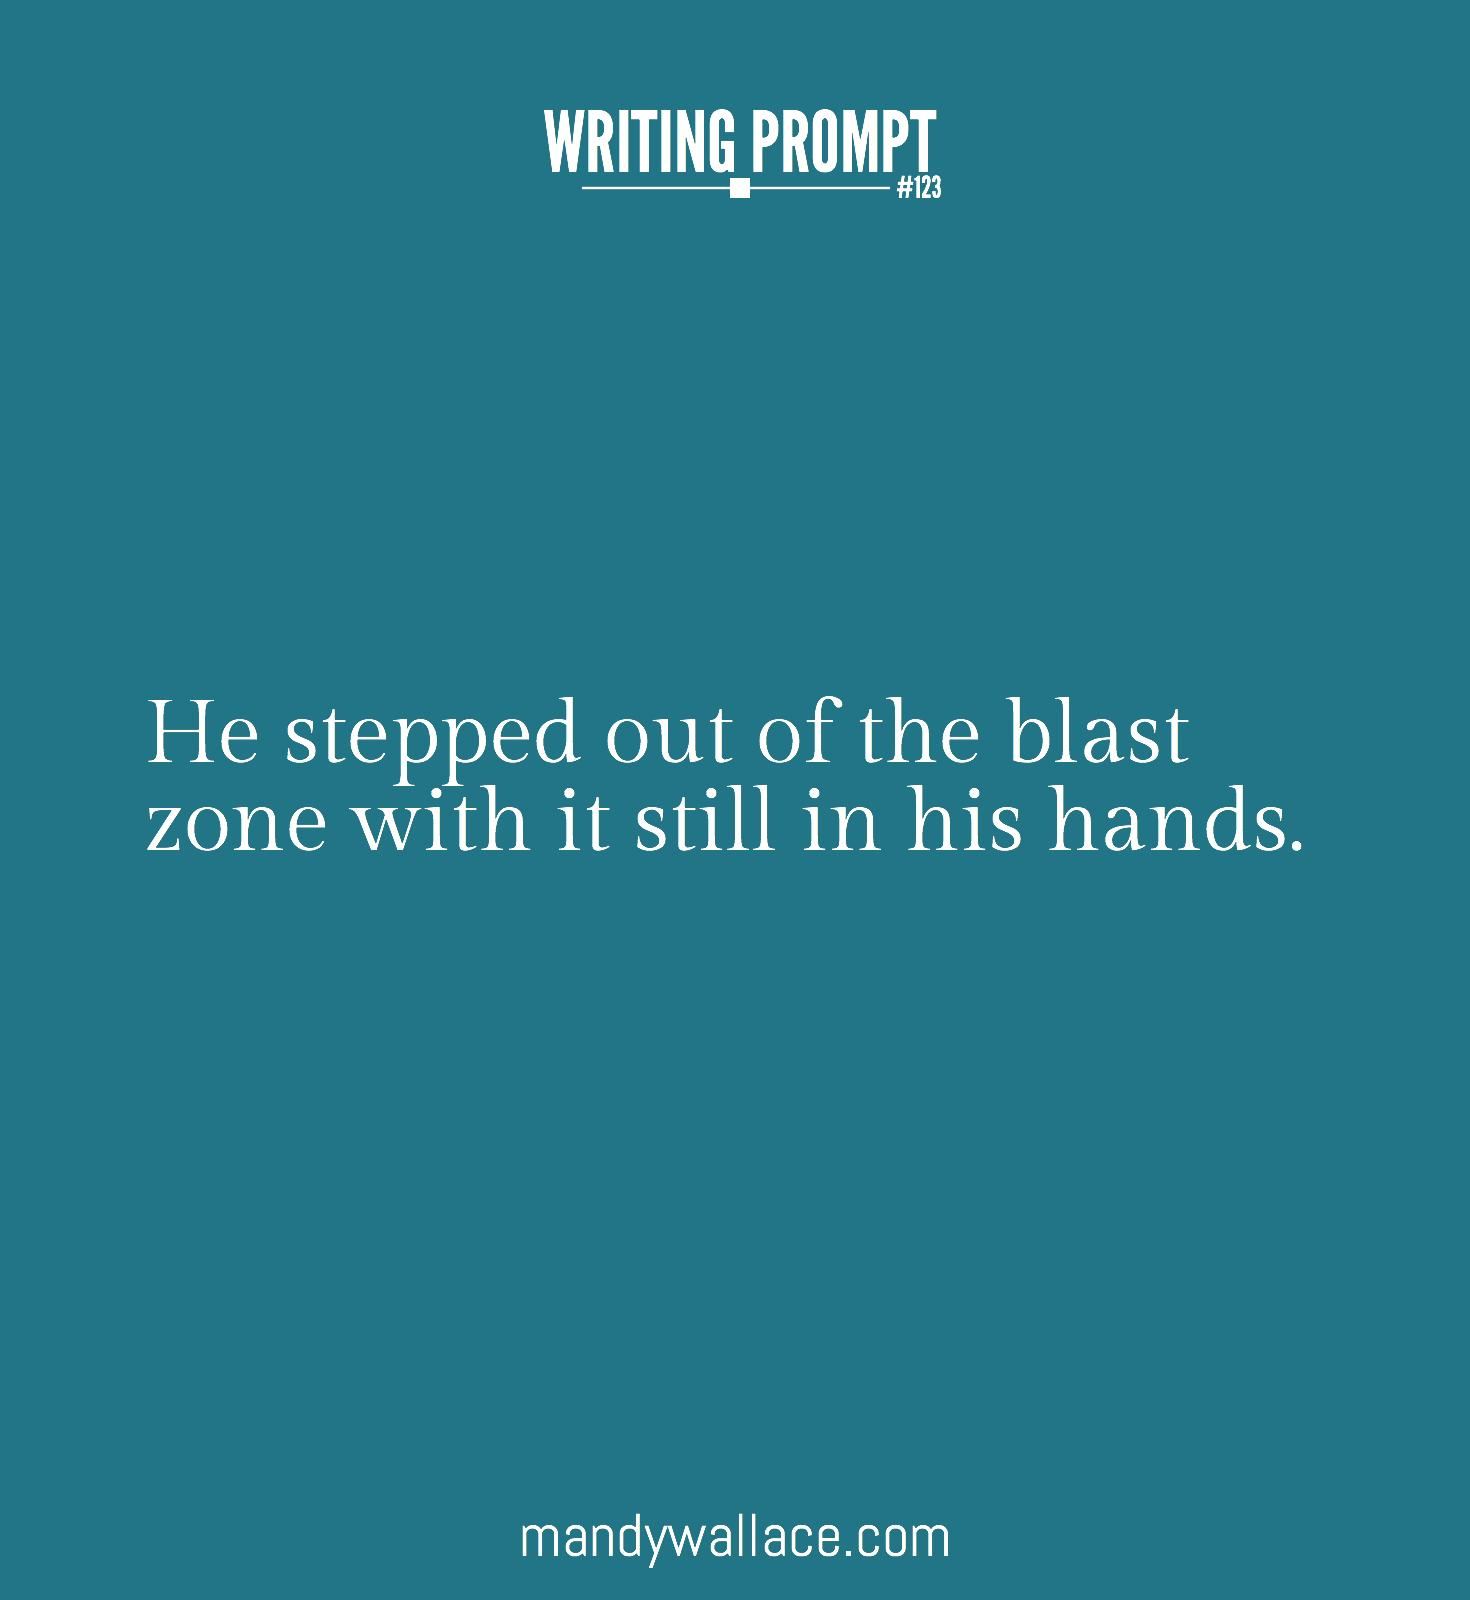 Writing Prompt #123: He stepped out of the blast zone with it still in his hands.